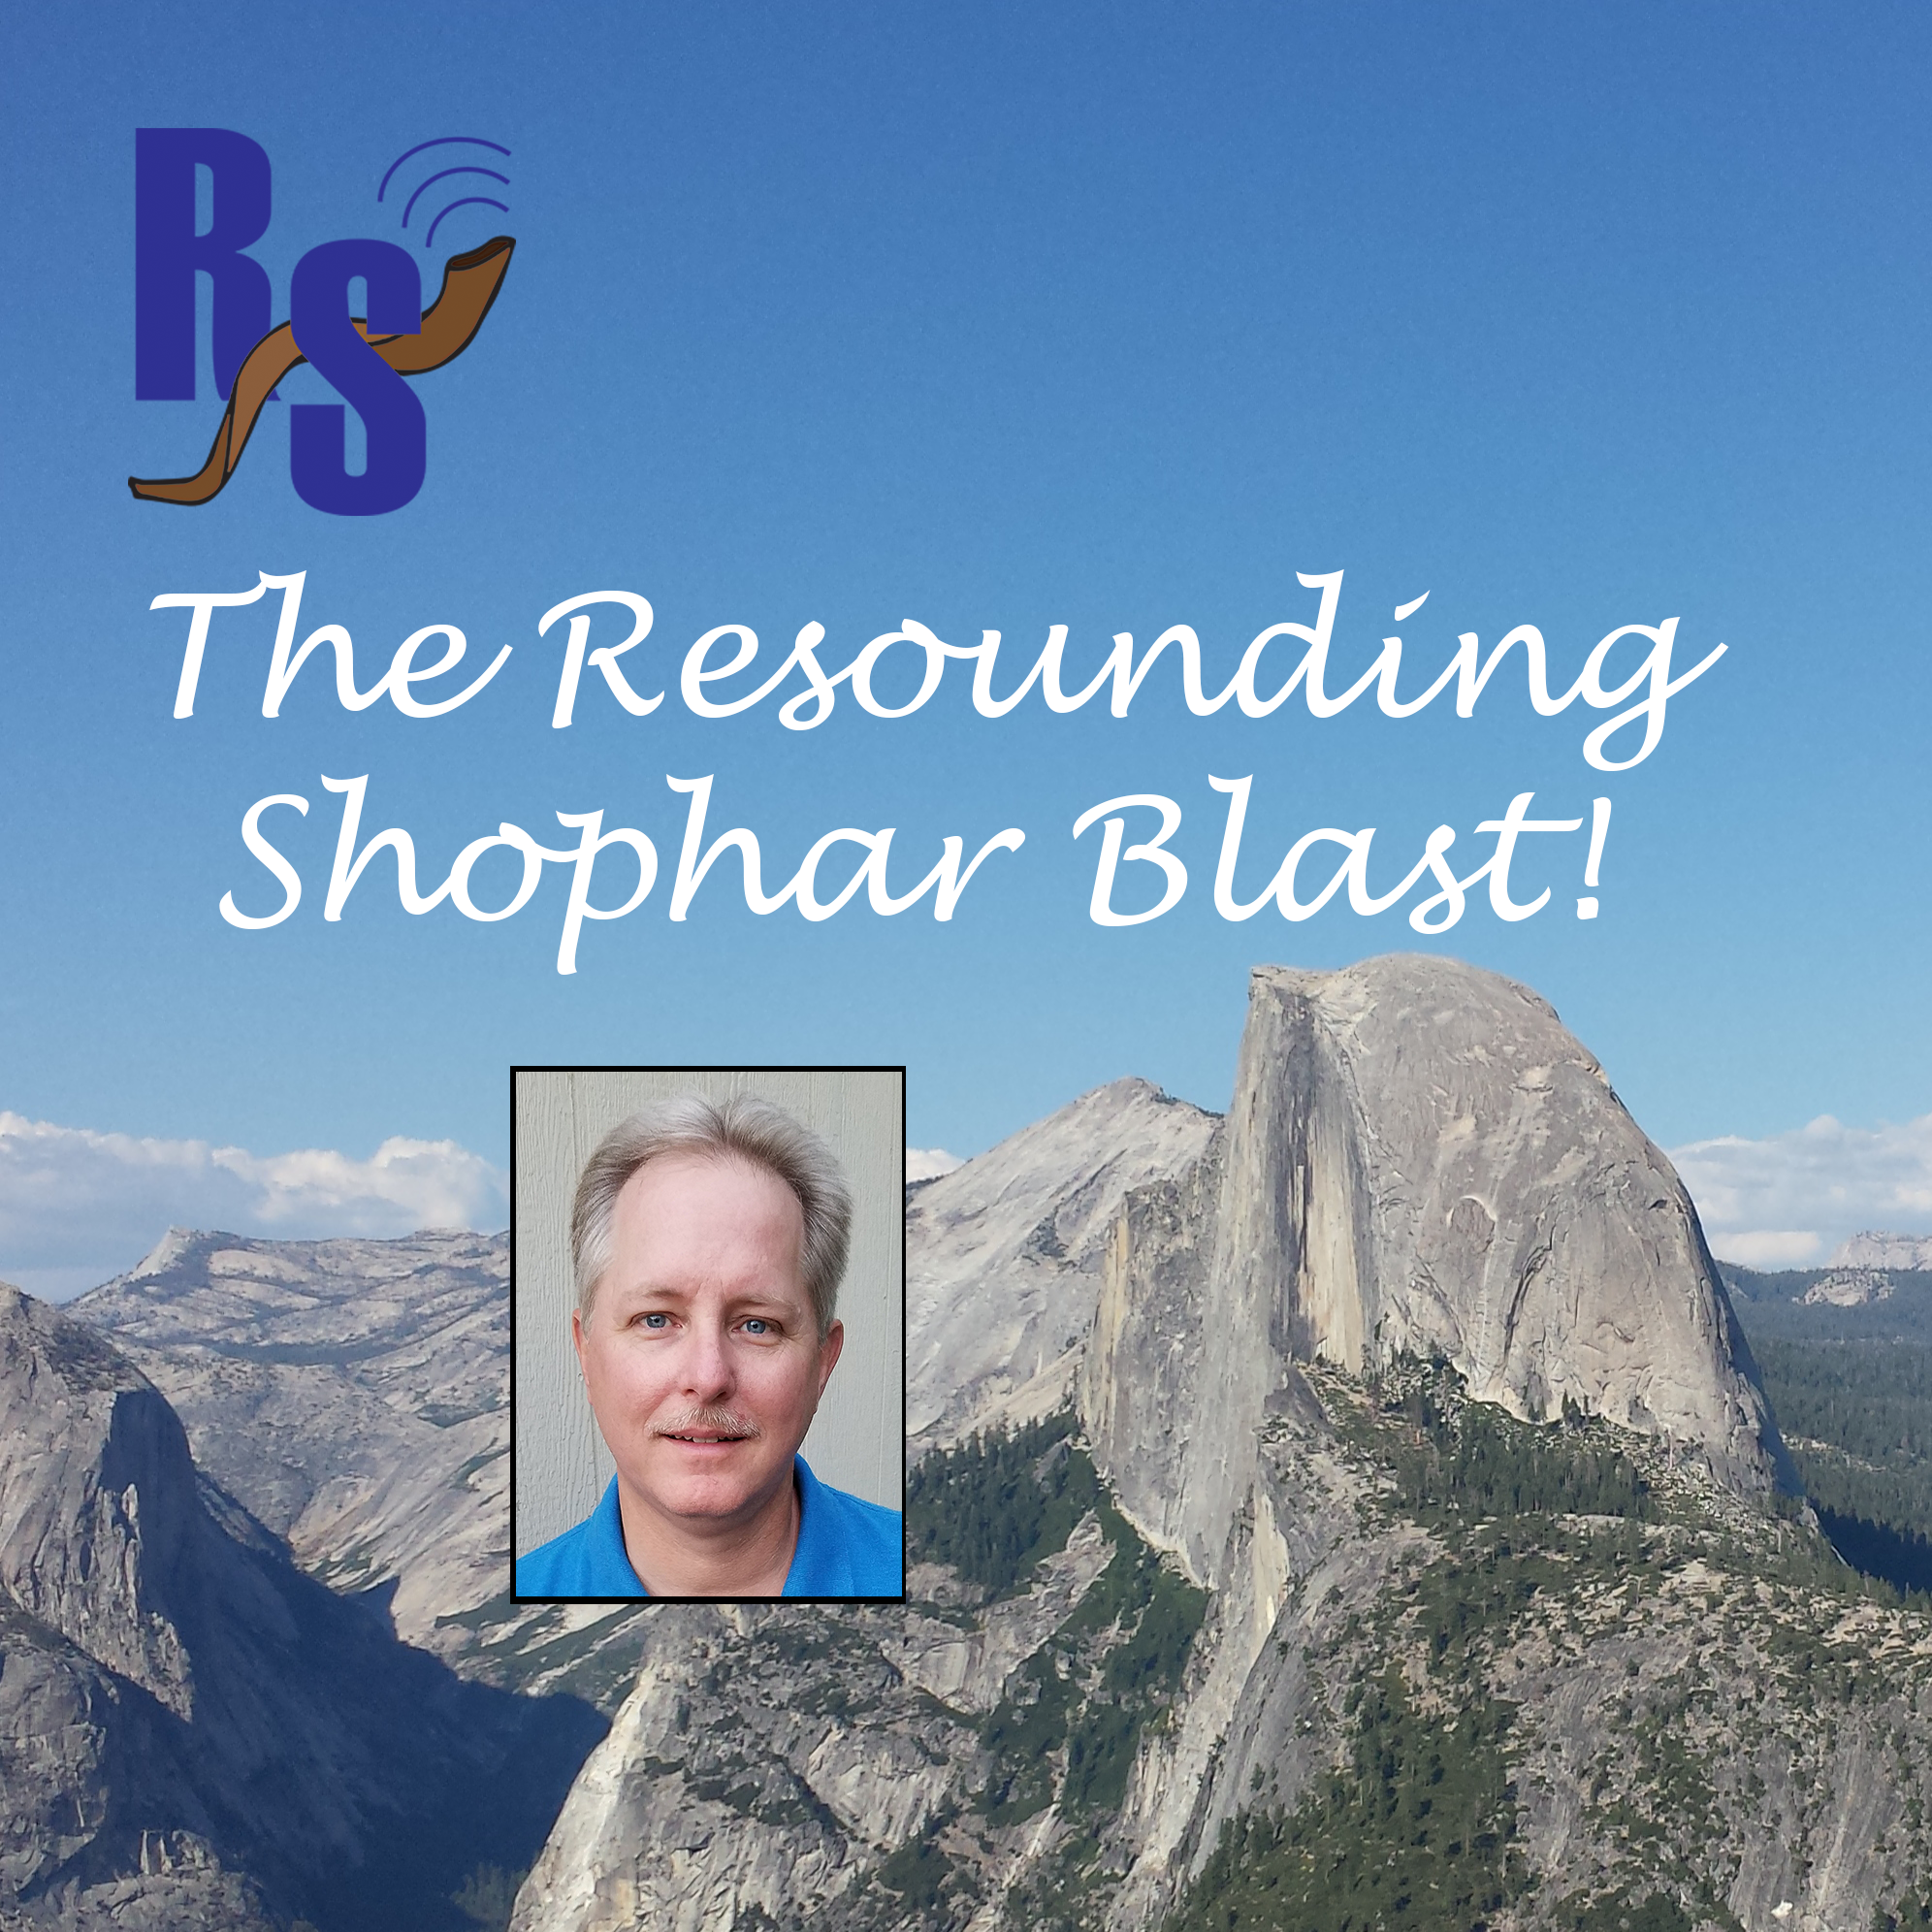 Resounding Shophar Blast Podcast